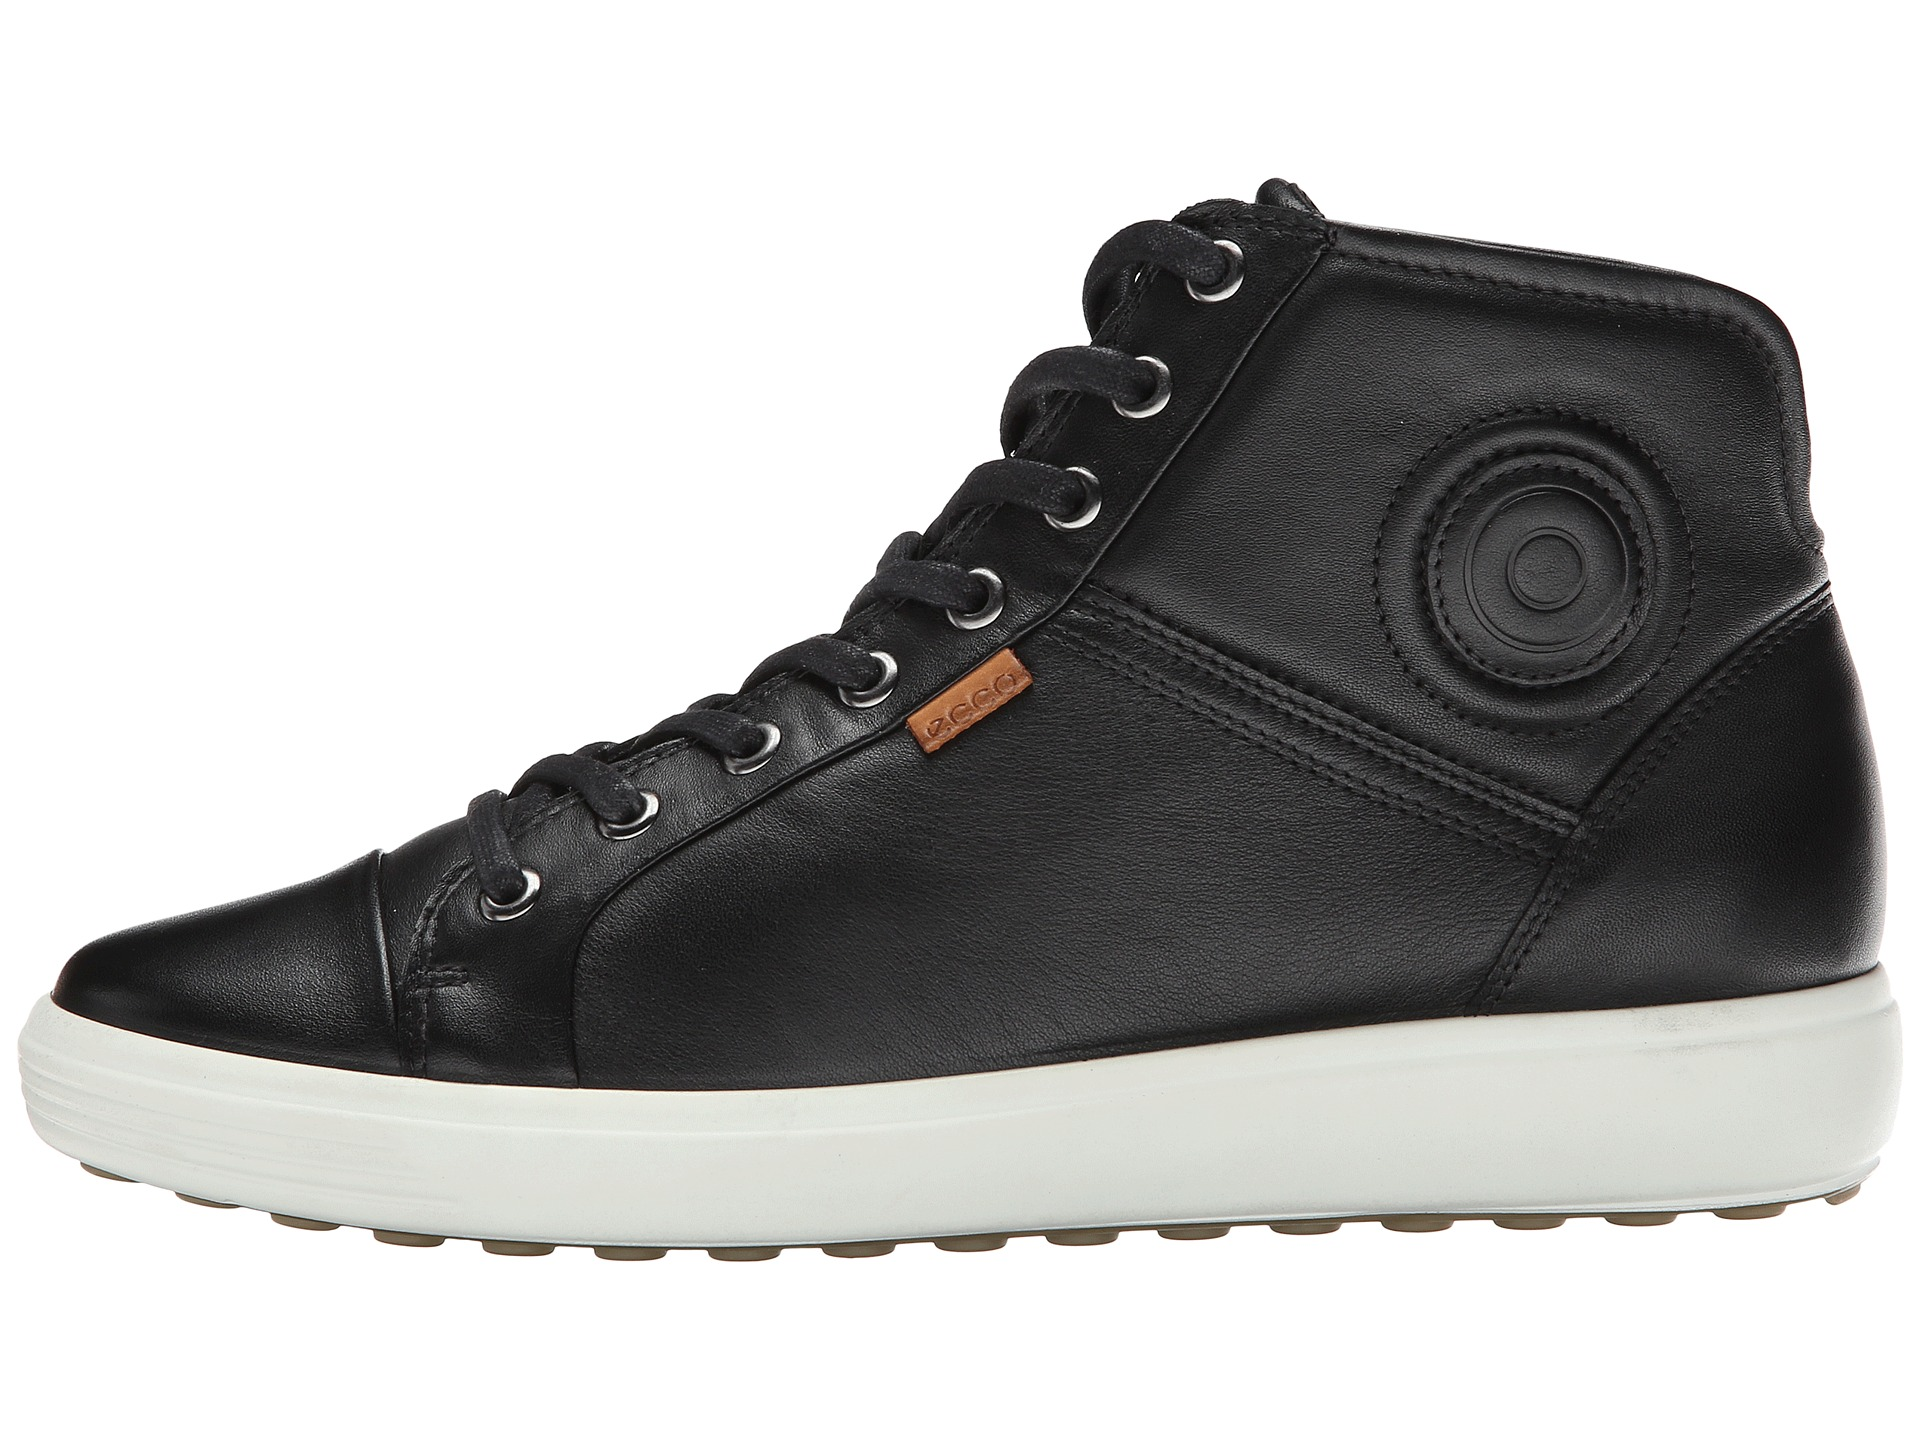 Ecco Soft Vii High Top Shoes